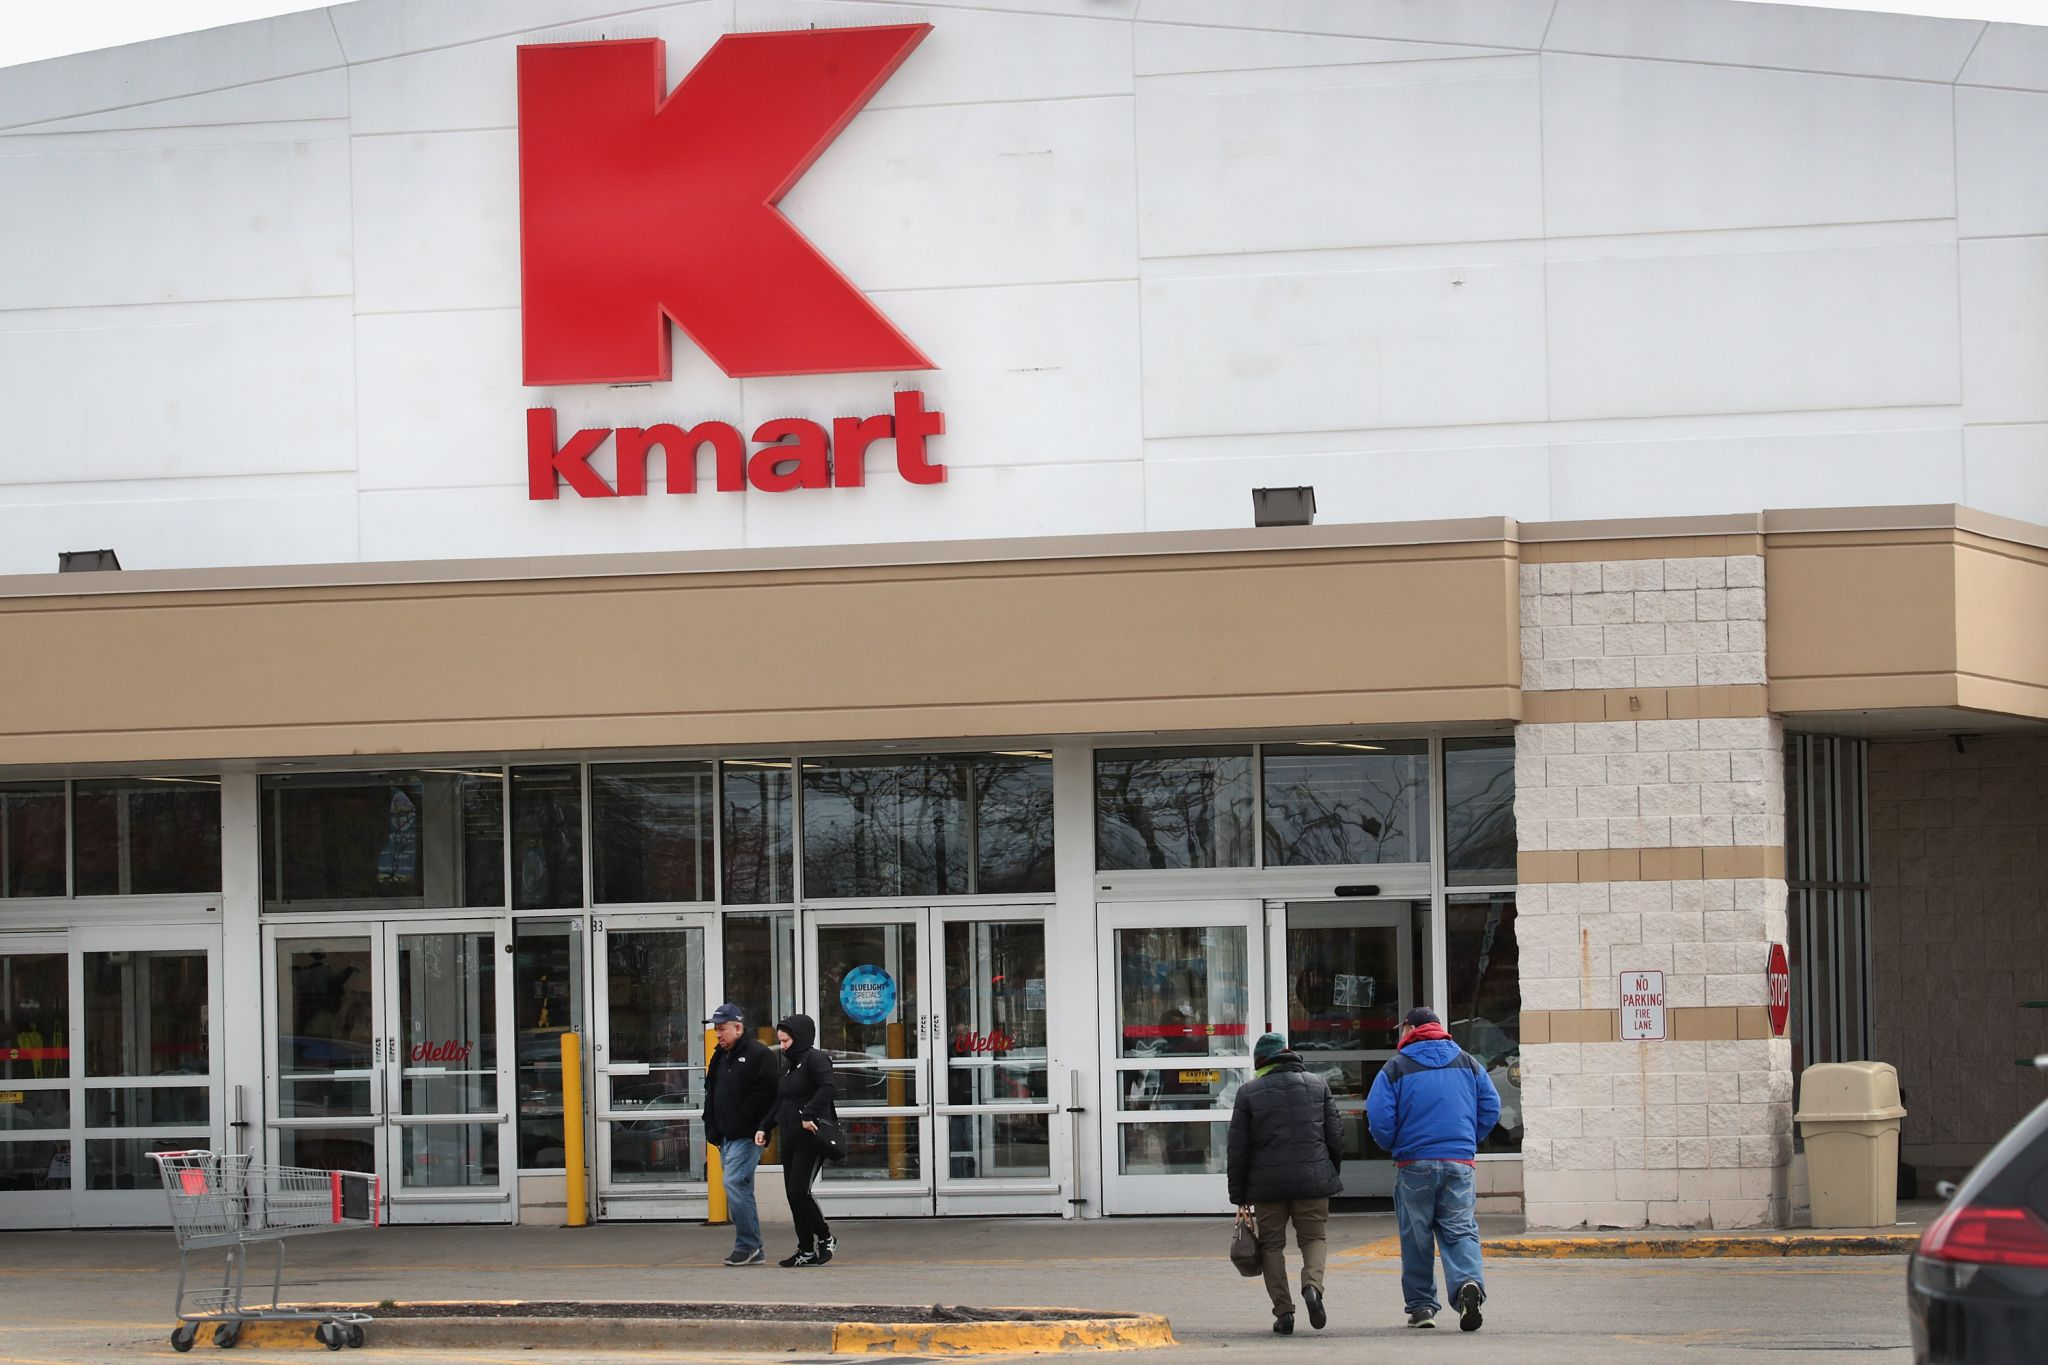 ade4bd3a0c3 Sears is closing 28 more Kmart stores — here's the full list (SHLD) - SFGate